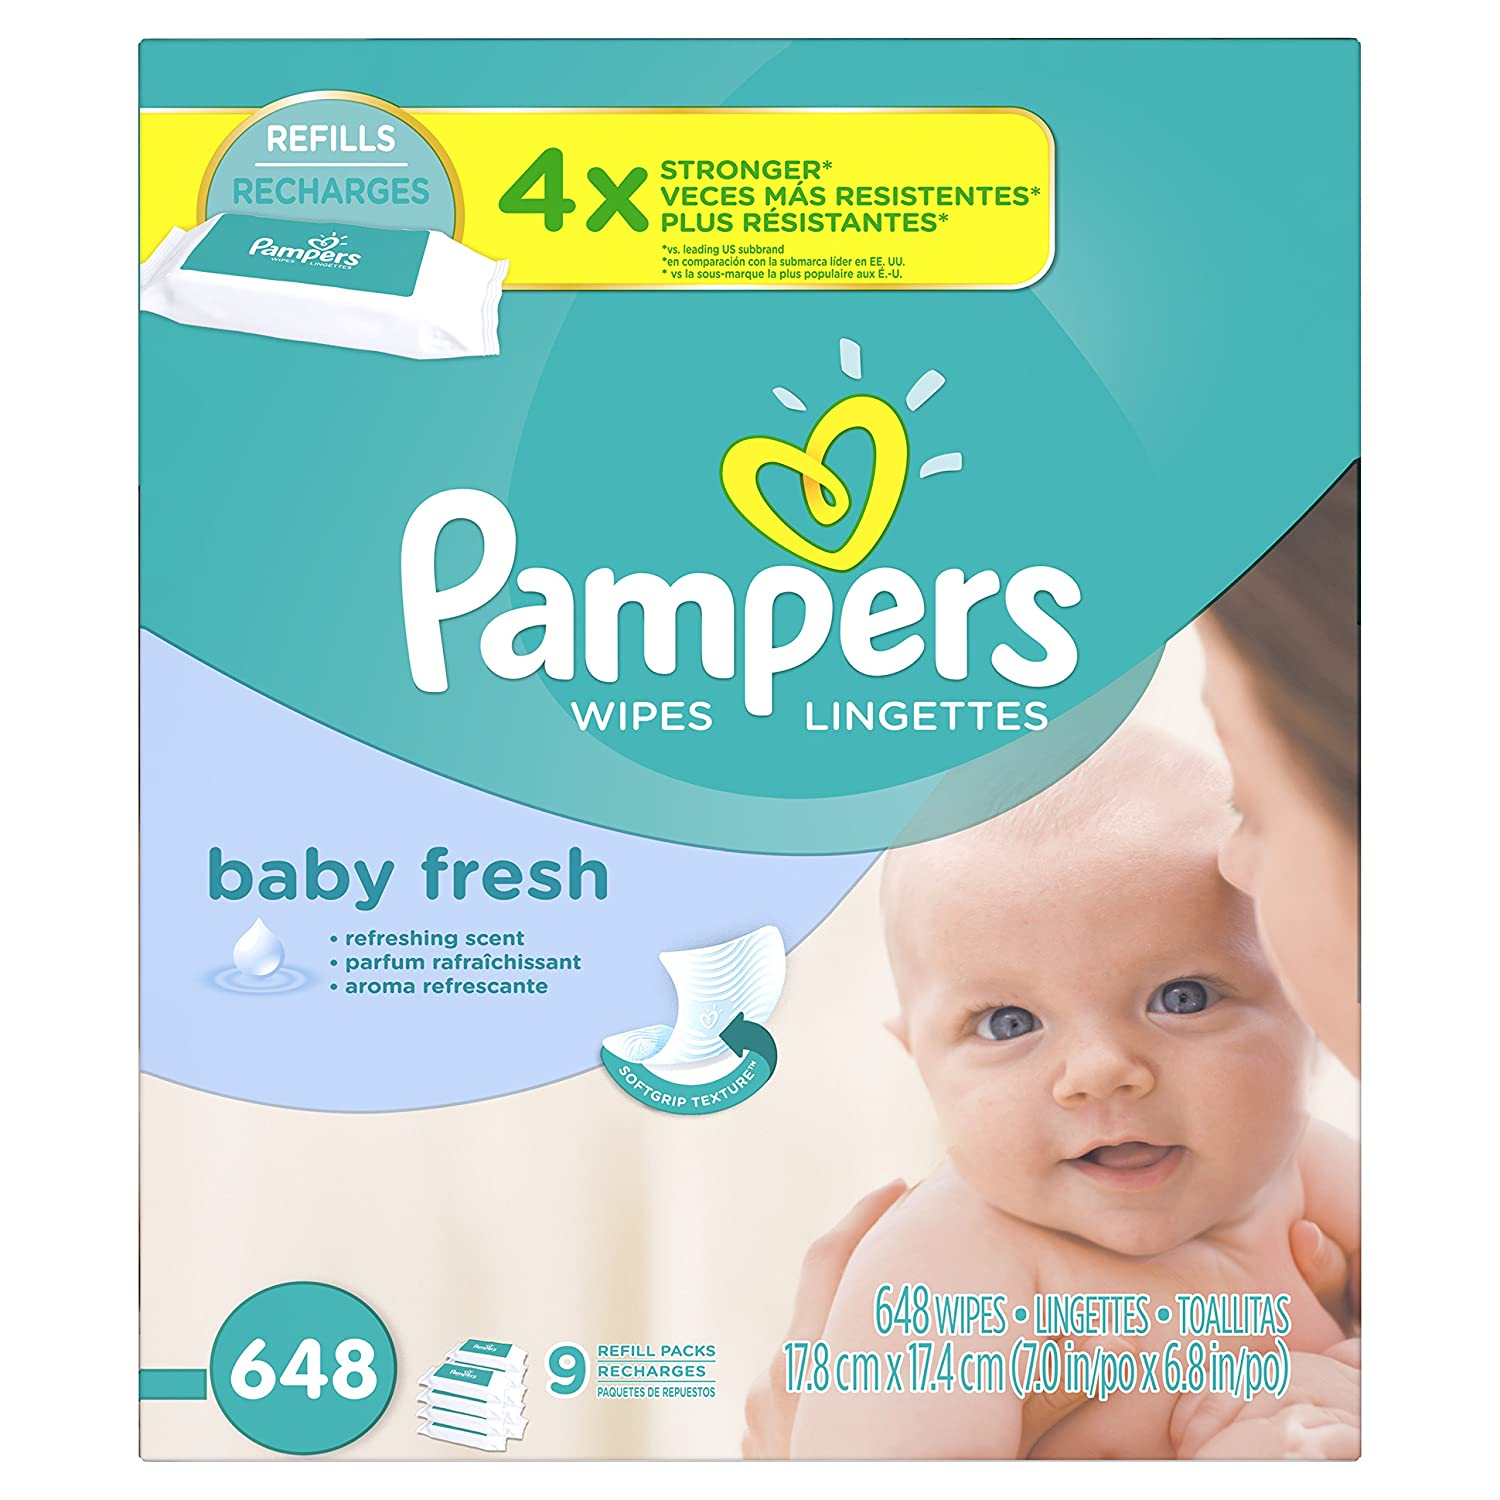 Pampers Baby Wipes, Baby Fresh Scent, 9X Refill Packs, 684 Count 10037000836732